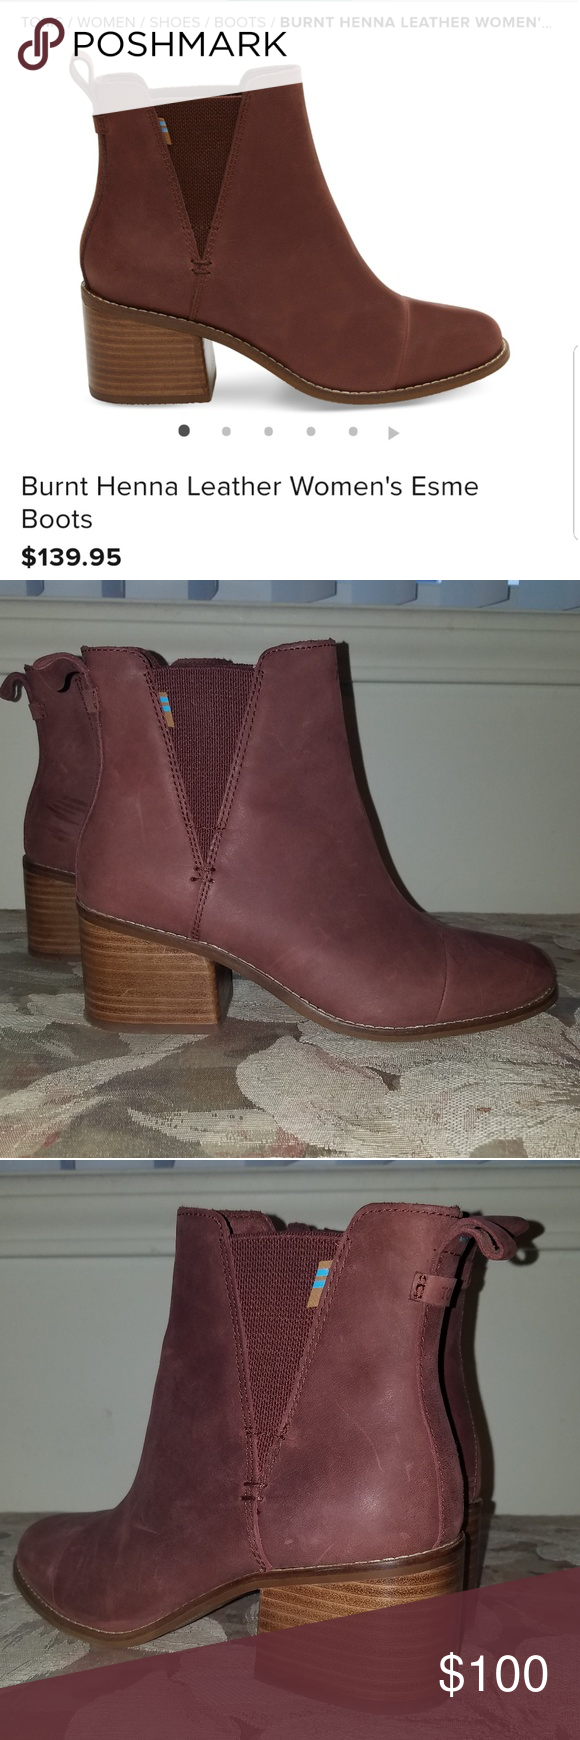 7a0fab643e607 Tom s Burnt Henna Leather Esme boots Super cute! Only worn once. Perfect  condition. Size 7.5 Toms Shoes Ankle Boots   Booties